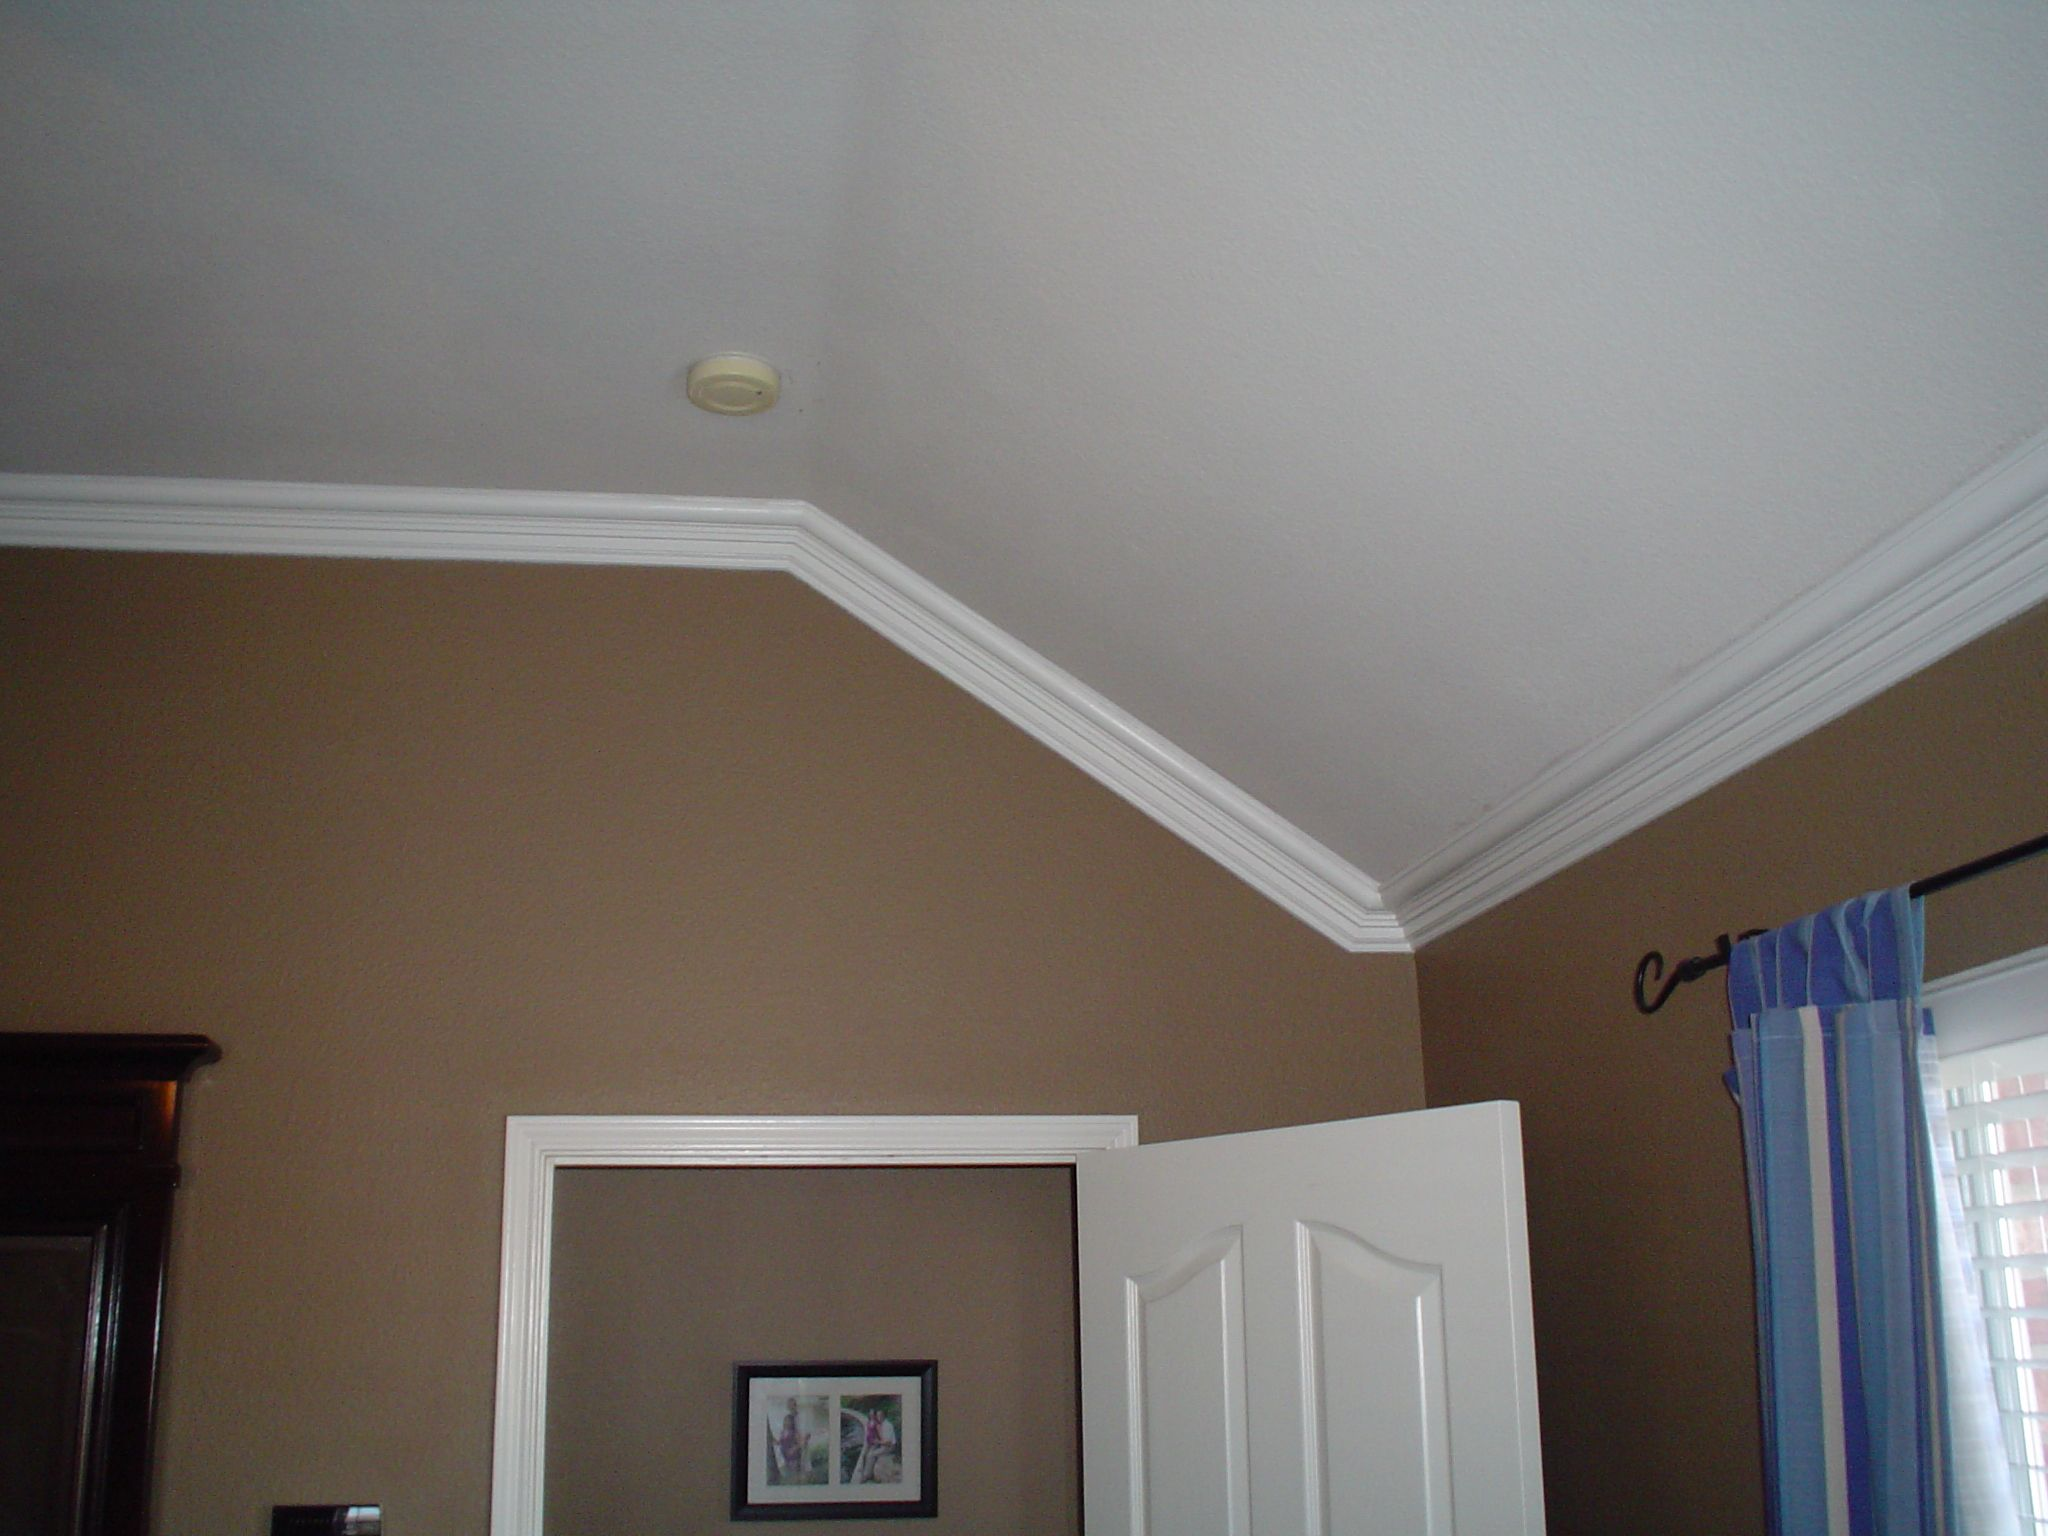 How to cut crown molding for sloped ceiling (inspiration ...